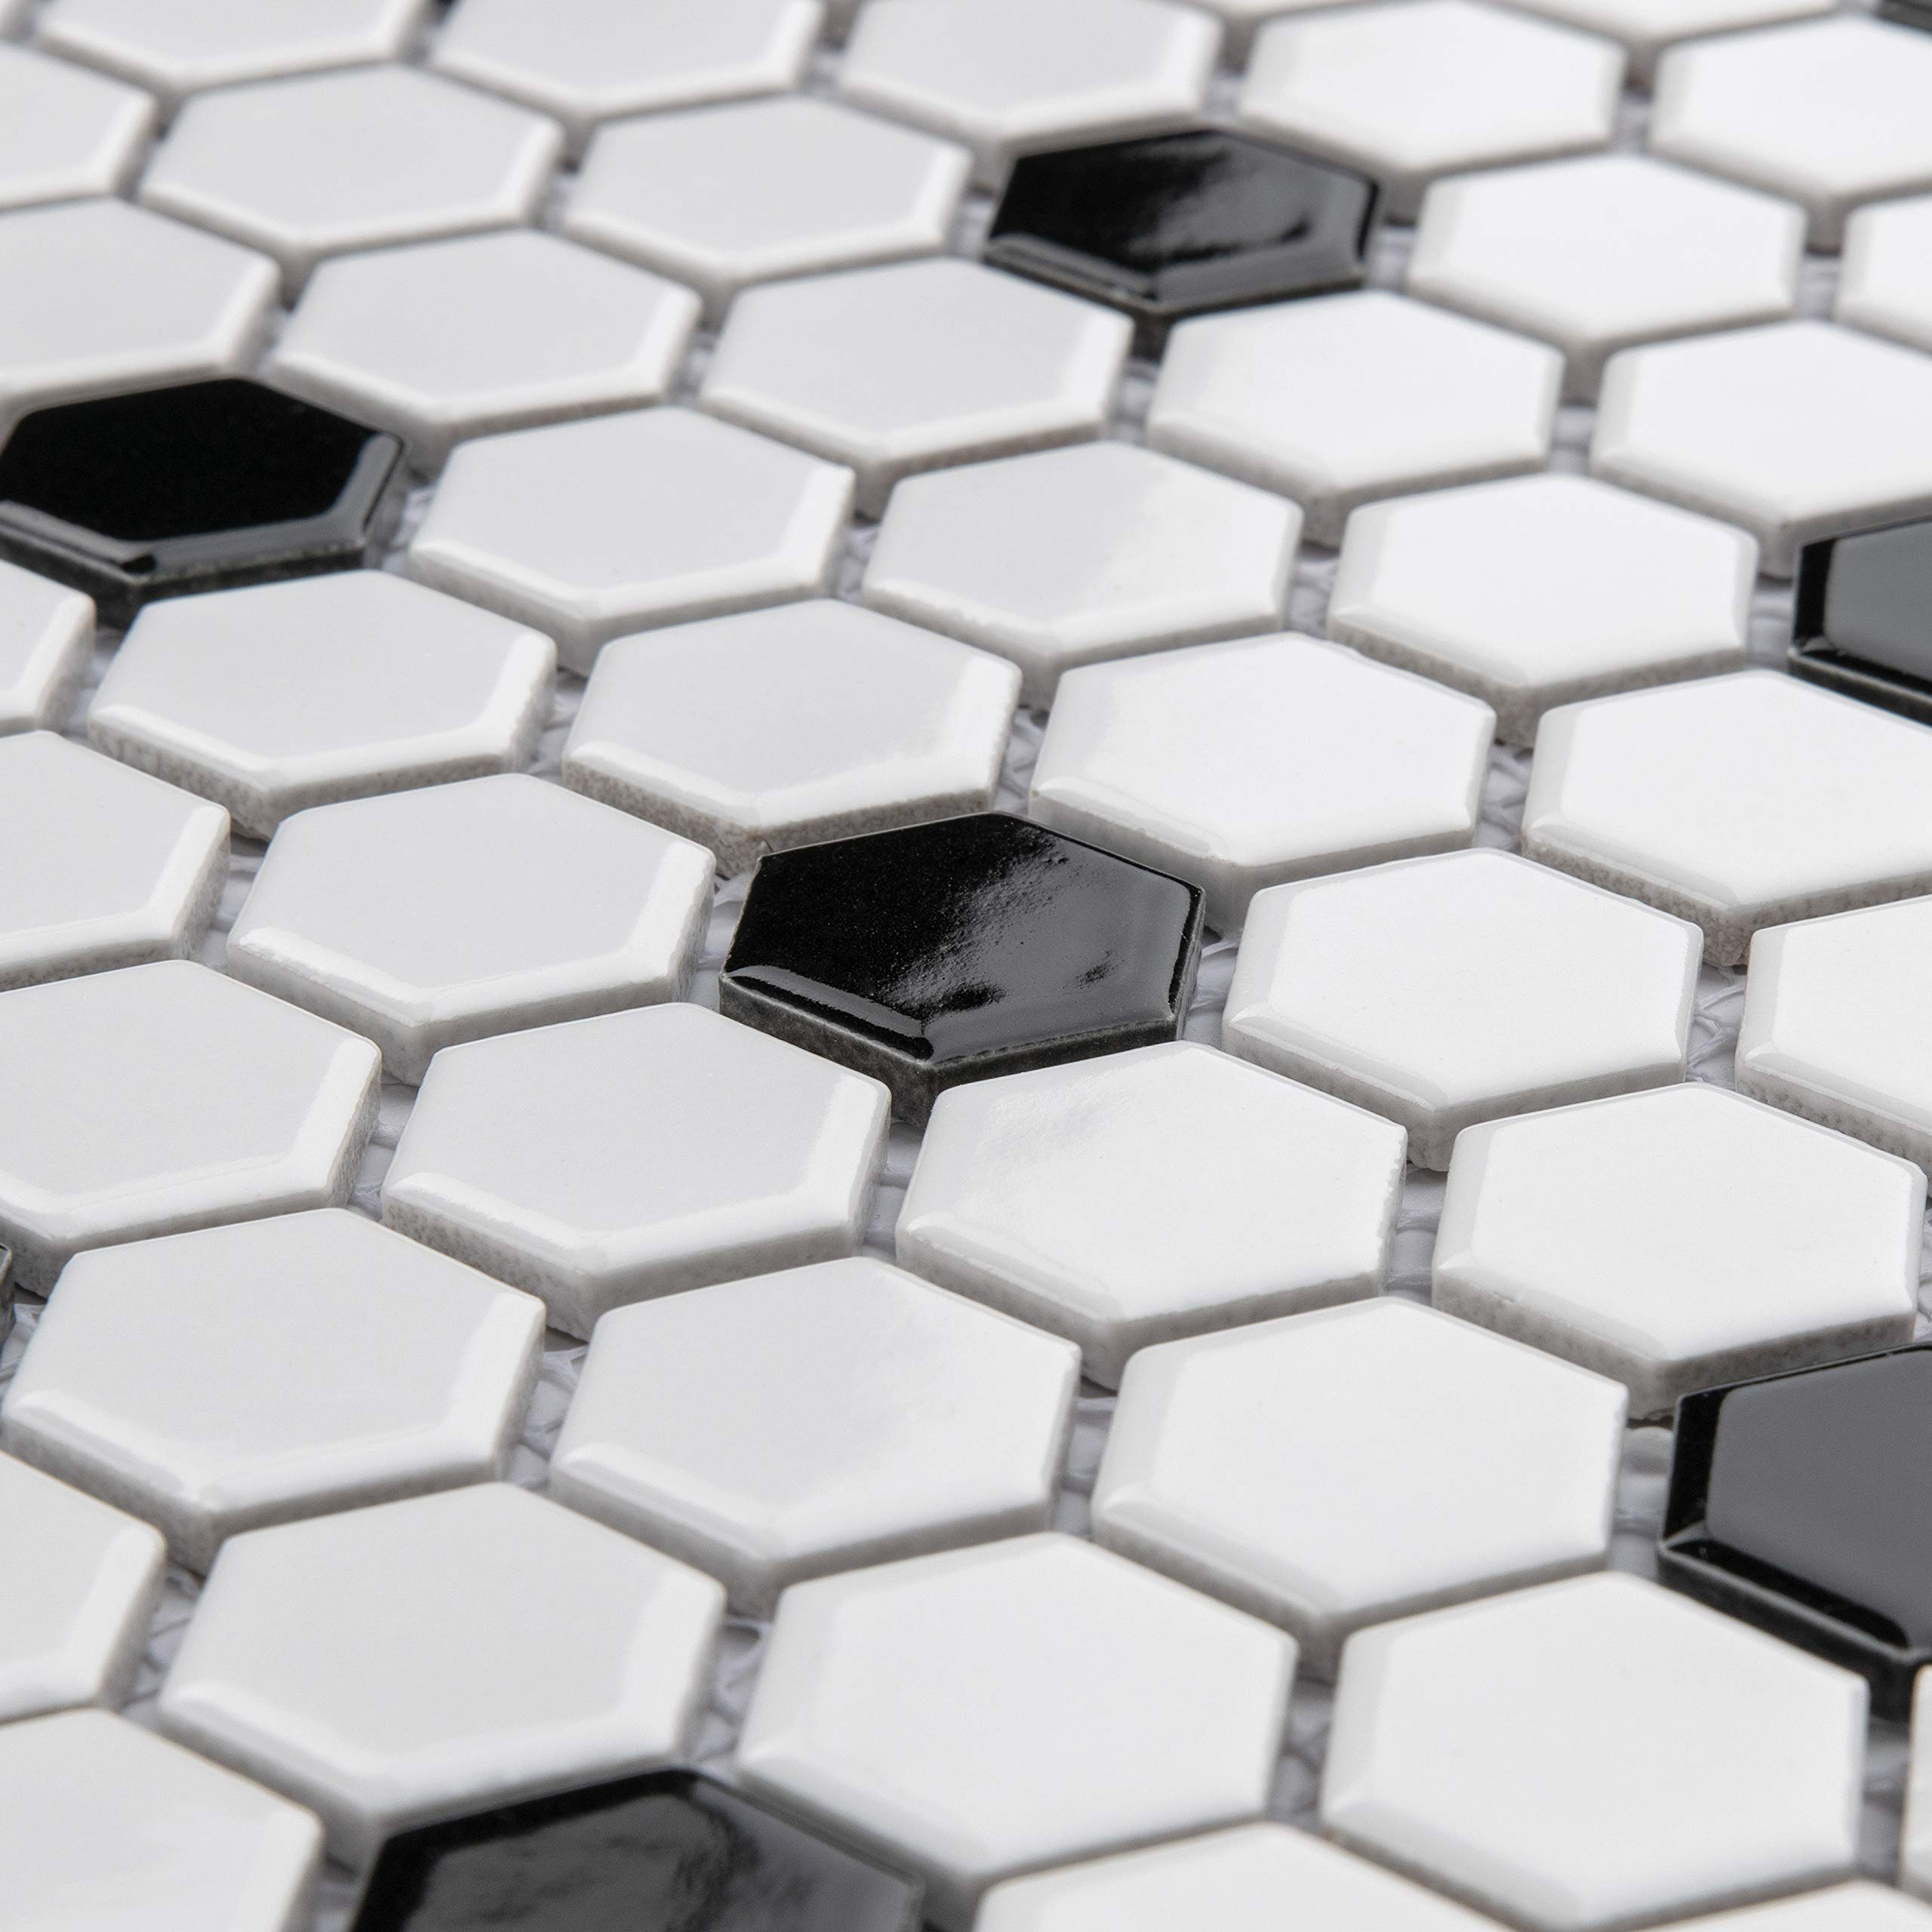 SomerTile FXLMHWBD Retro Hexagon Porcelain Mosaic Floor and Wall Tile, 10.25'' x 11.75'', White with Black Dot by SOMERTILE (Image #6)